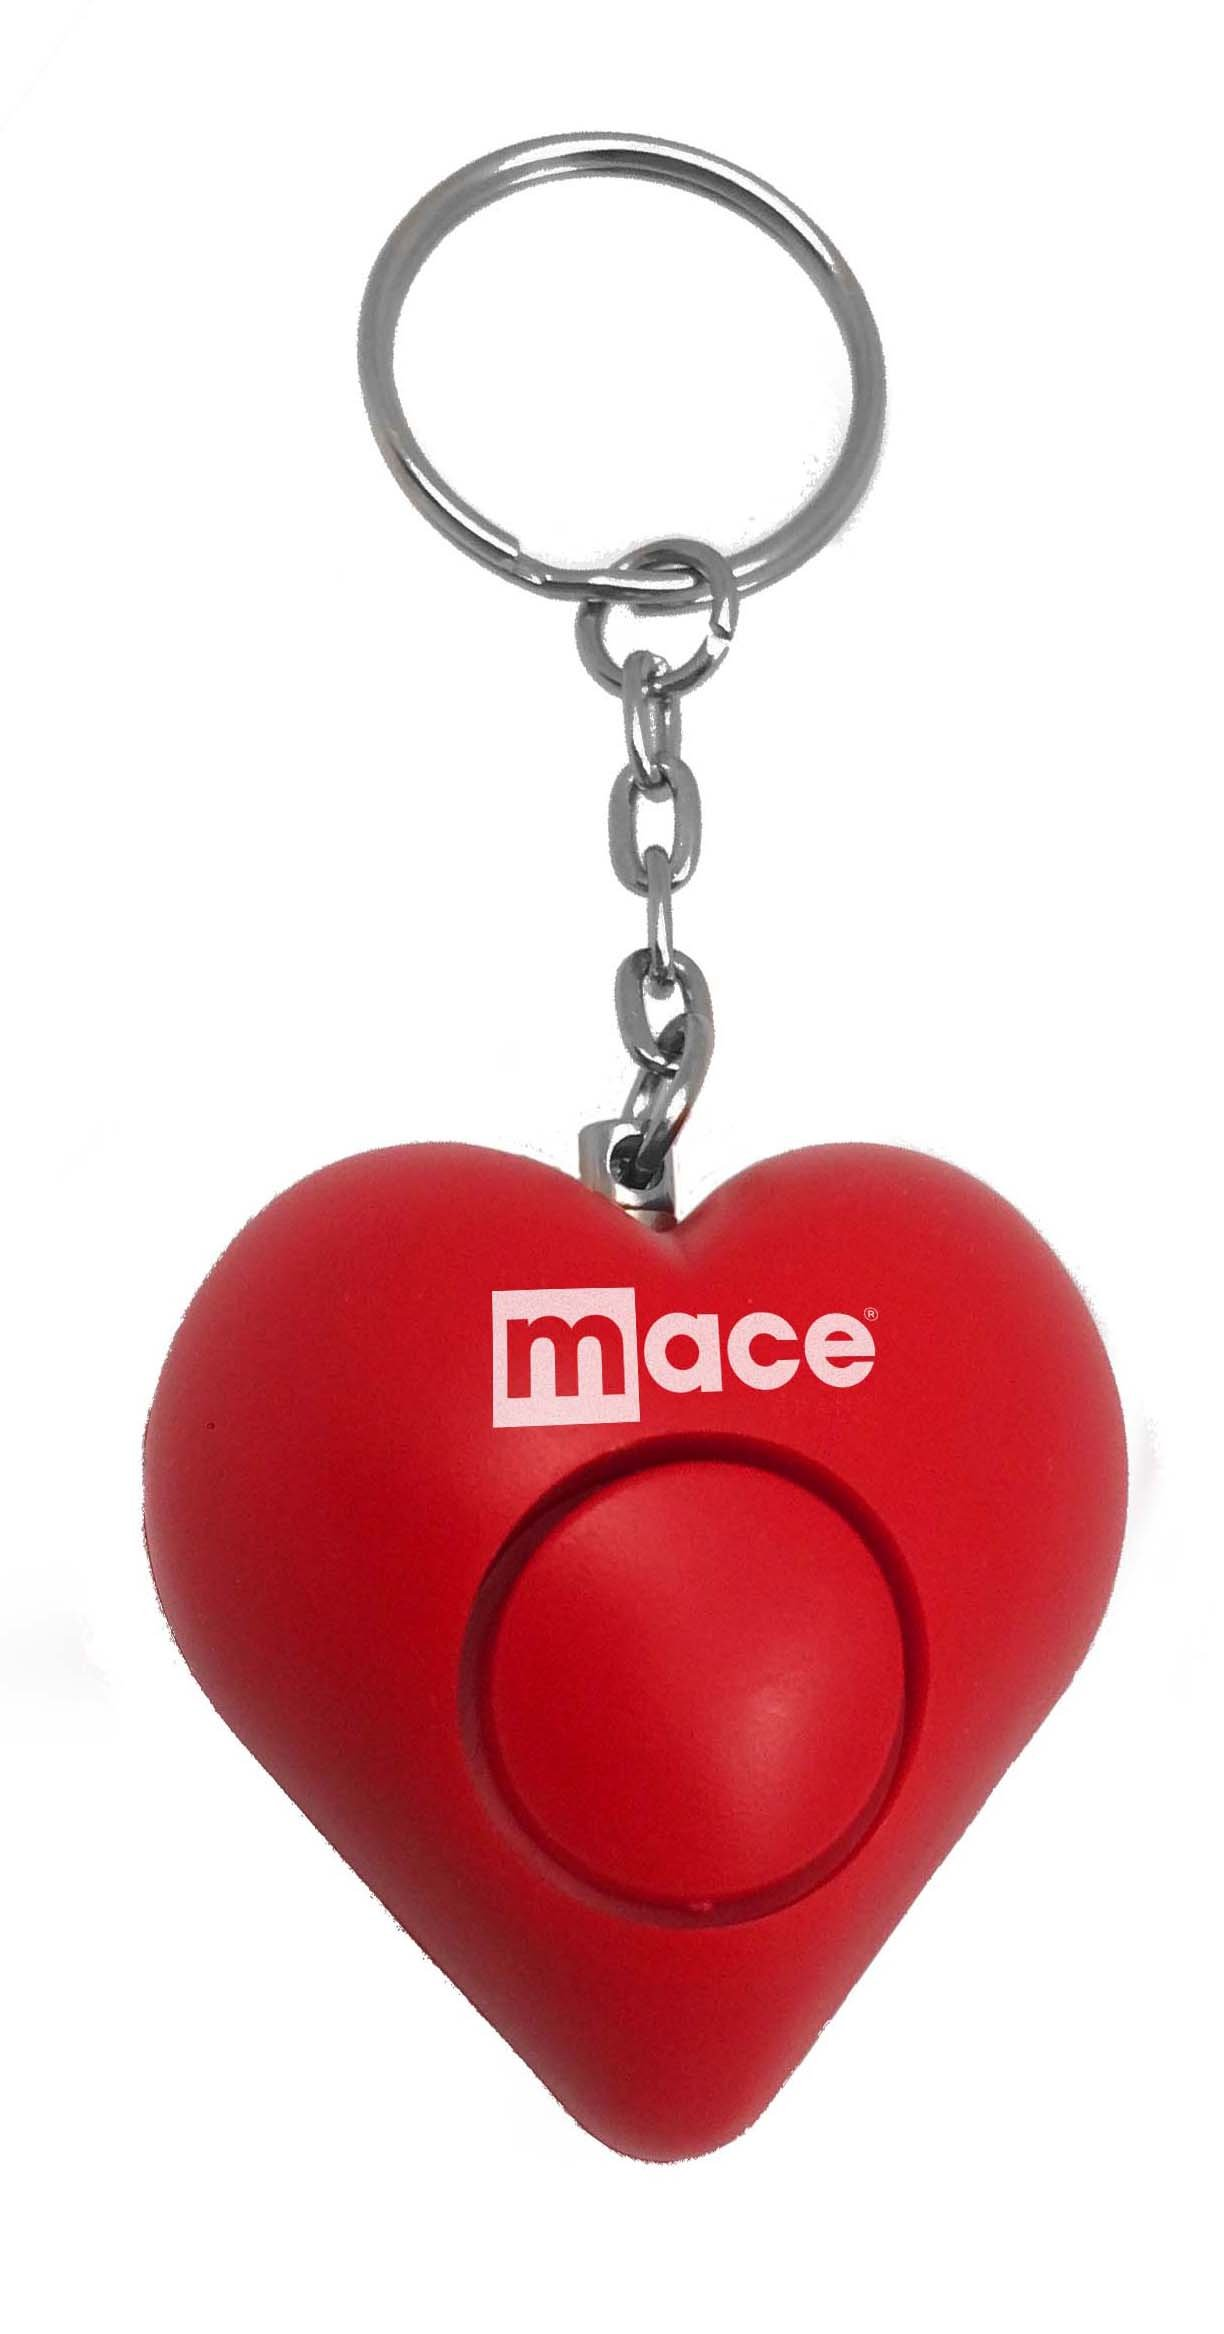 2-Pack Mace Brand Personal Alarm Heart With Keychain and Pull-Pin Activation (Purple+Red)